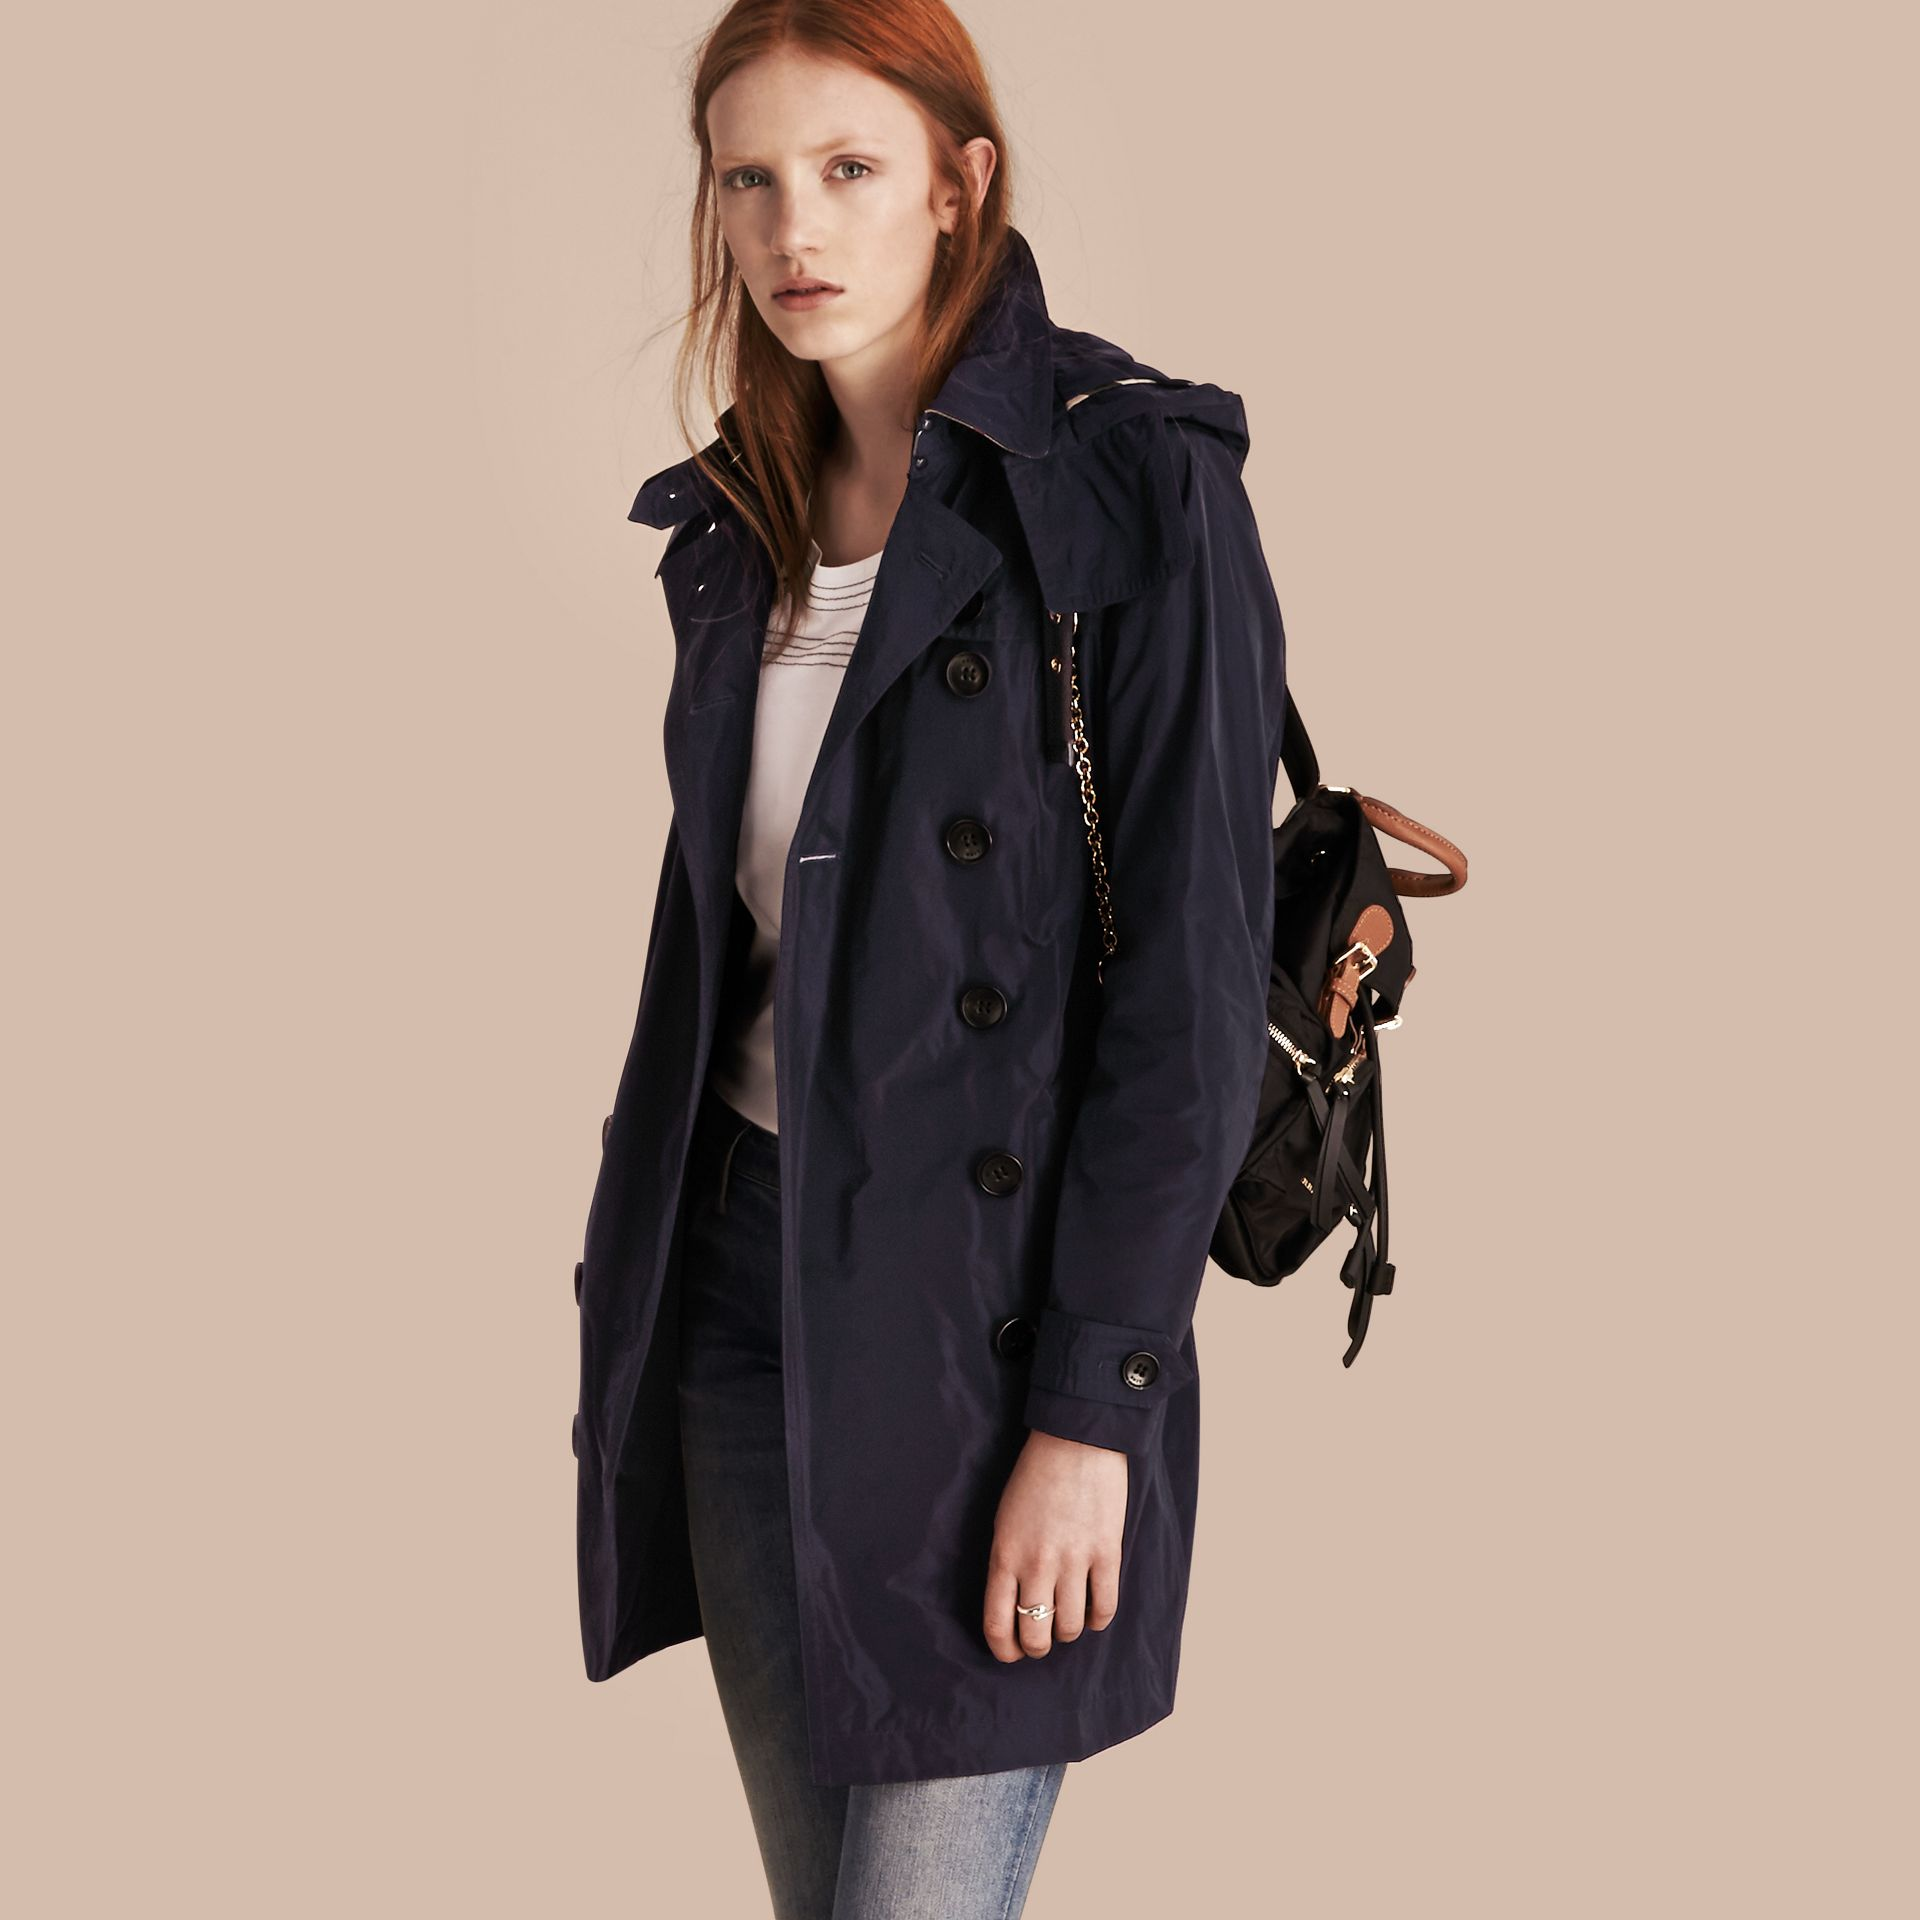 Navy Taffeta Trench Coat with Detachable Hood Navy - gallery image 1